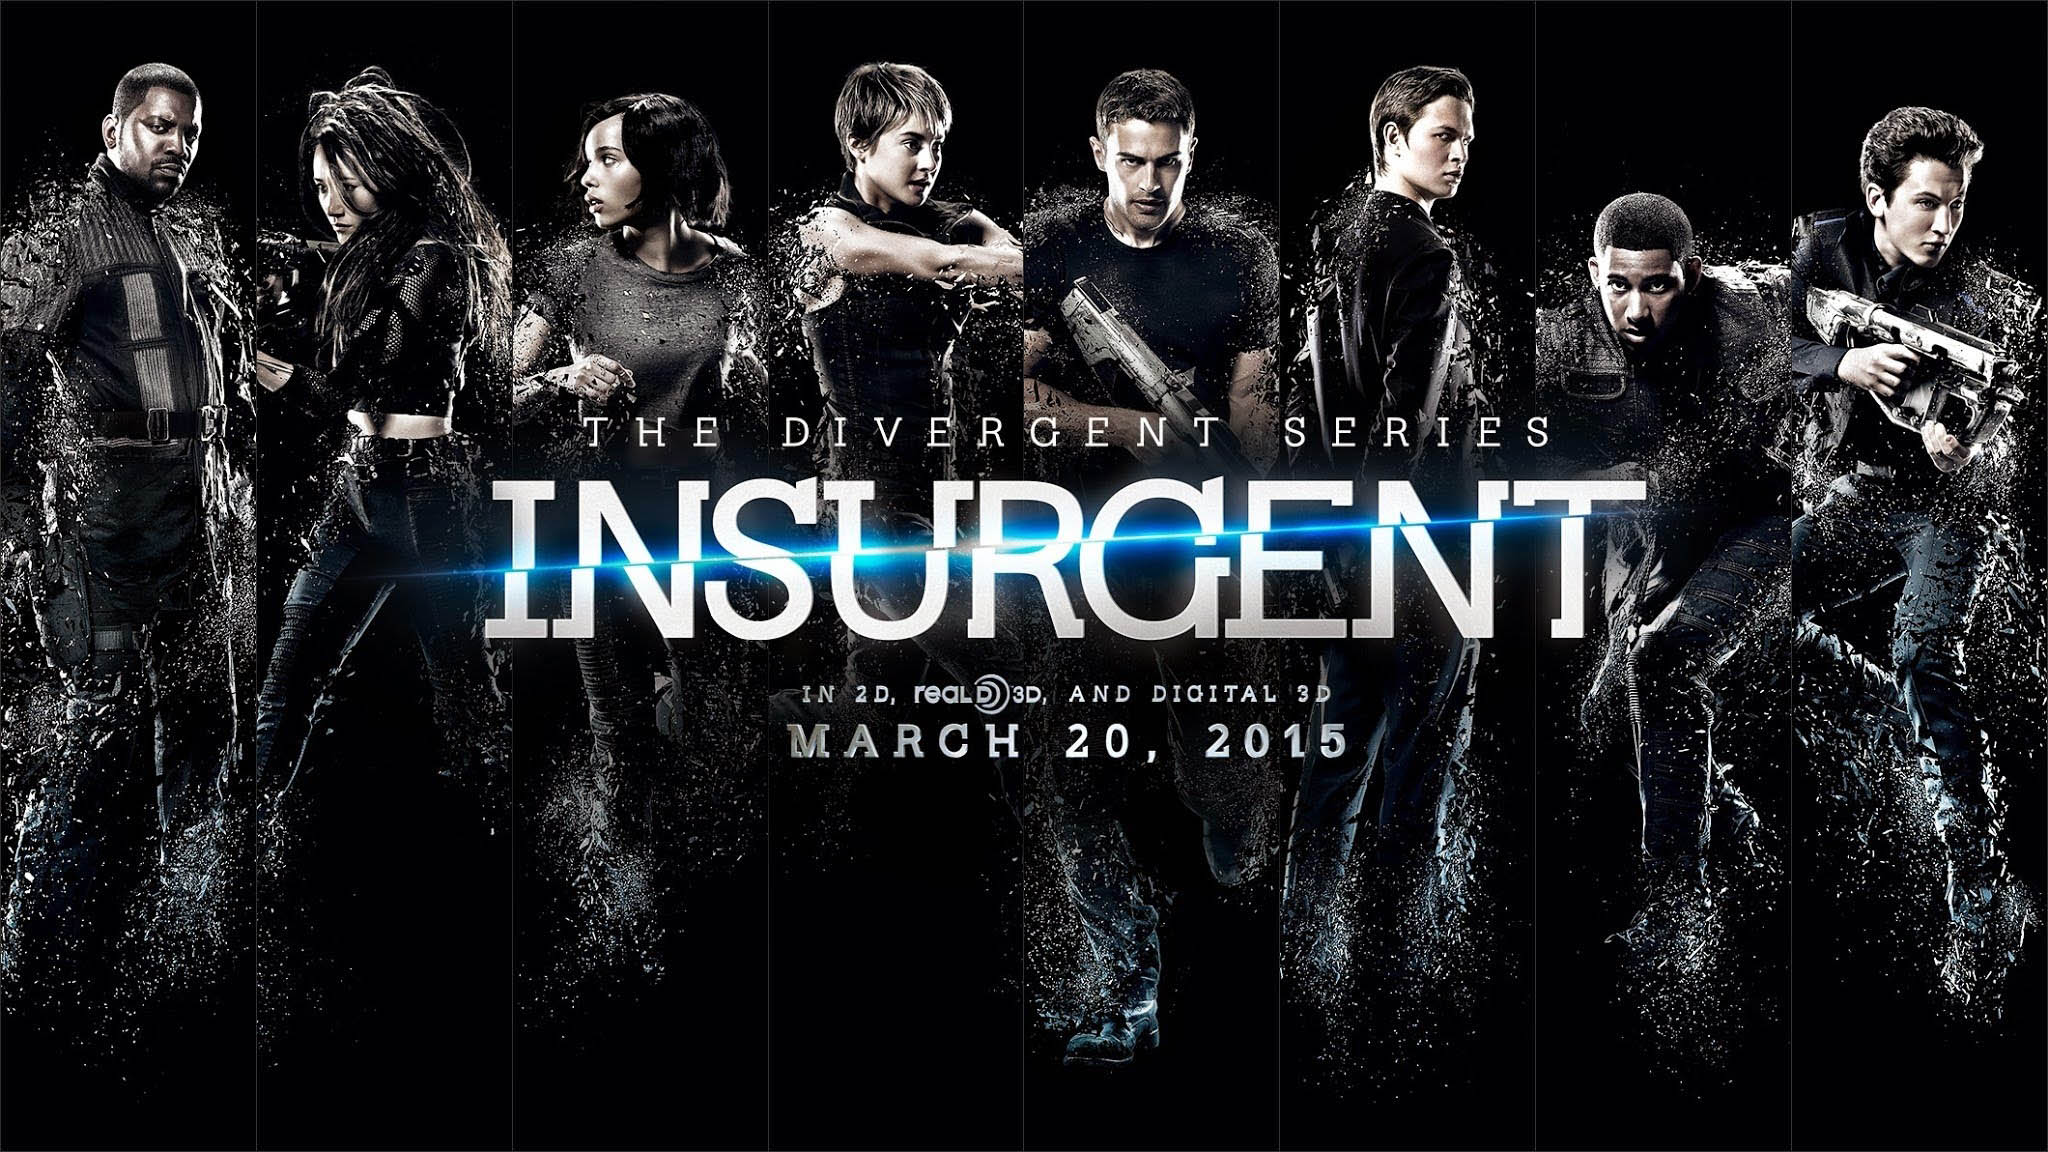 The Divergent Series: Insurgent Movie Poster - Wallpaper #3943 on